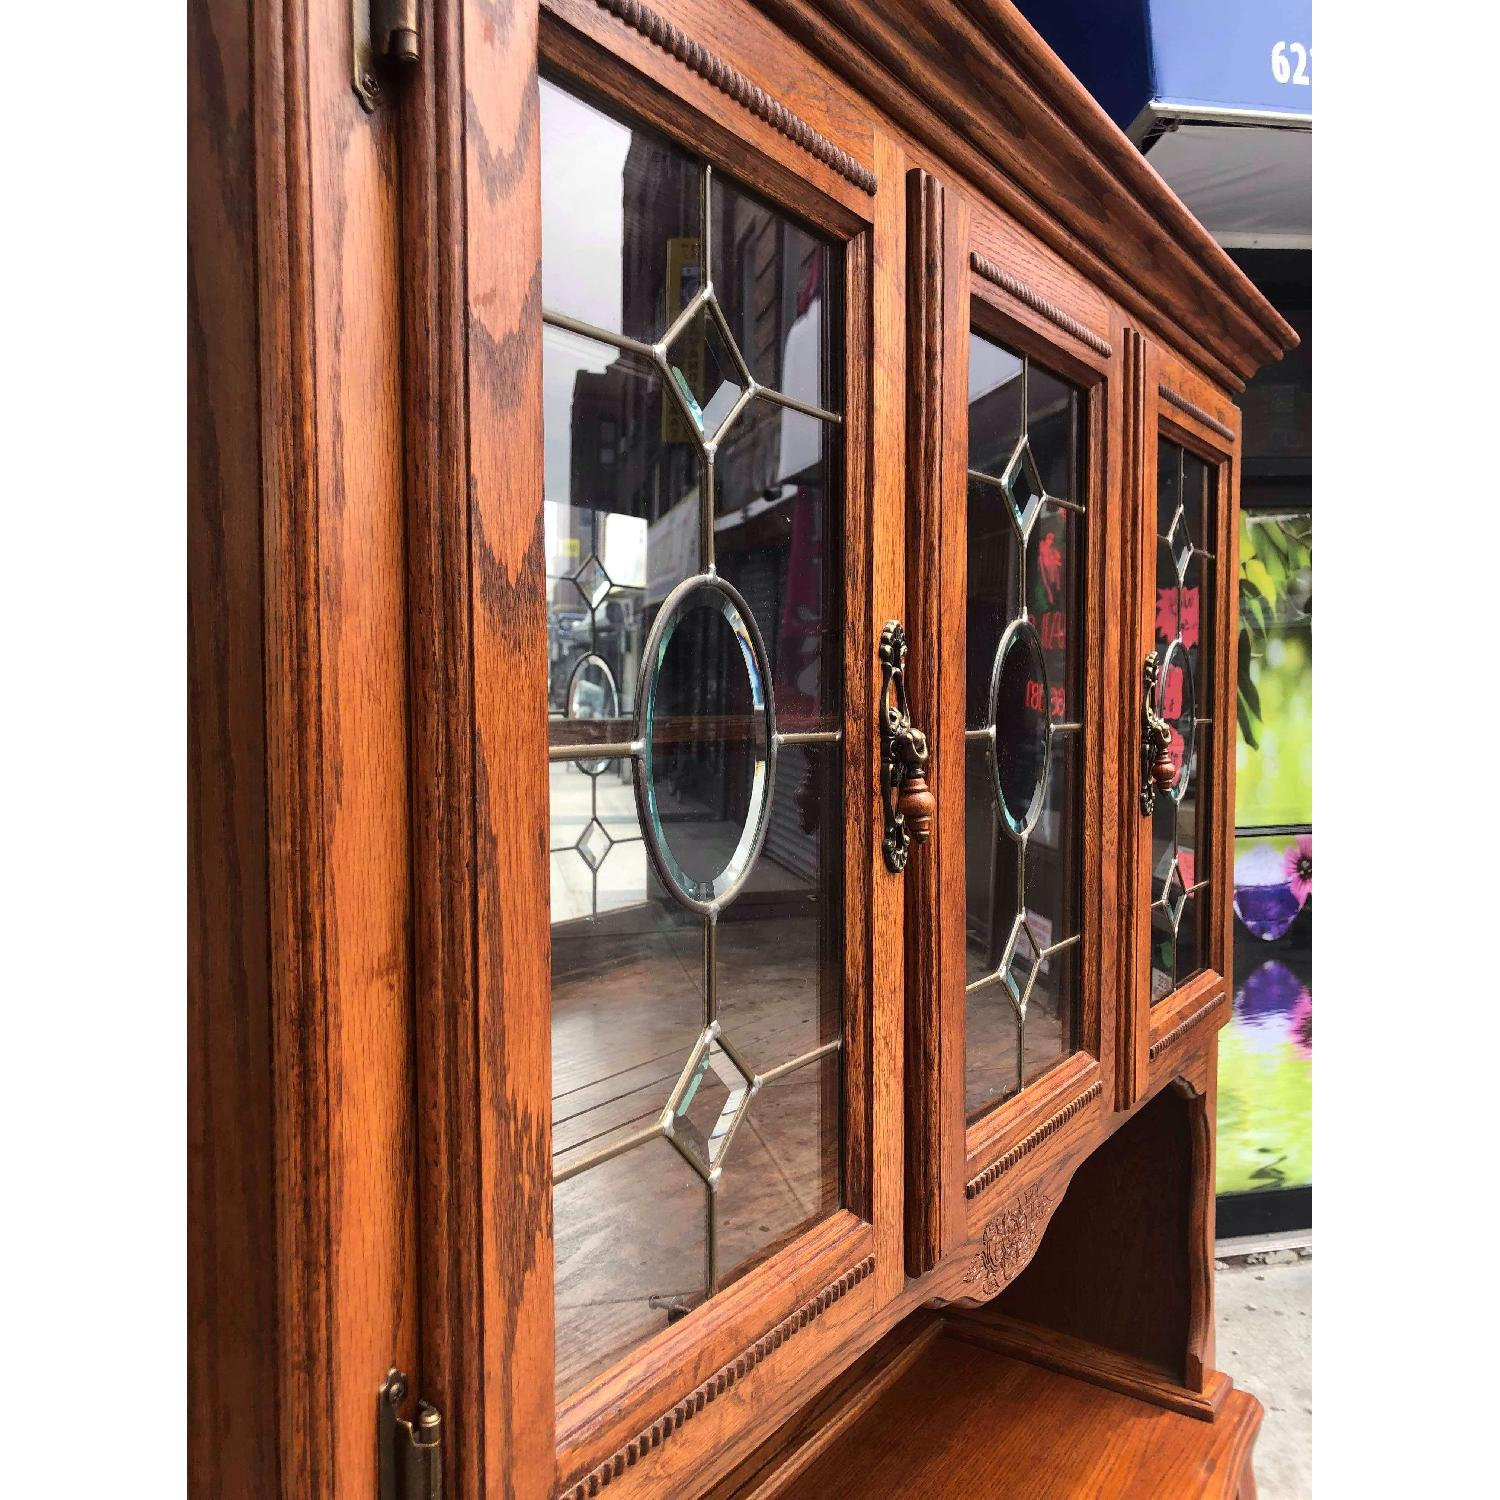 Solid Wood Early American Style Hutch w/ Lights - image-8